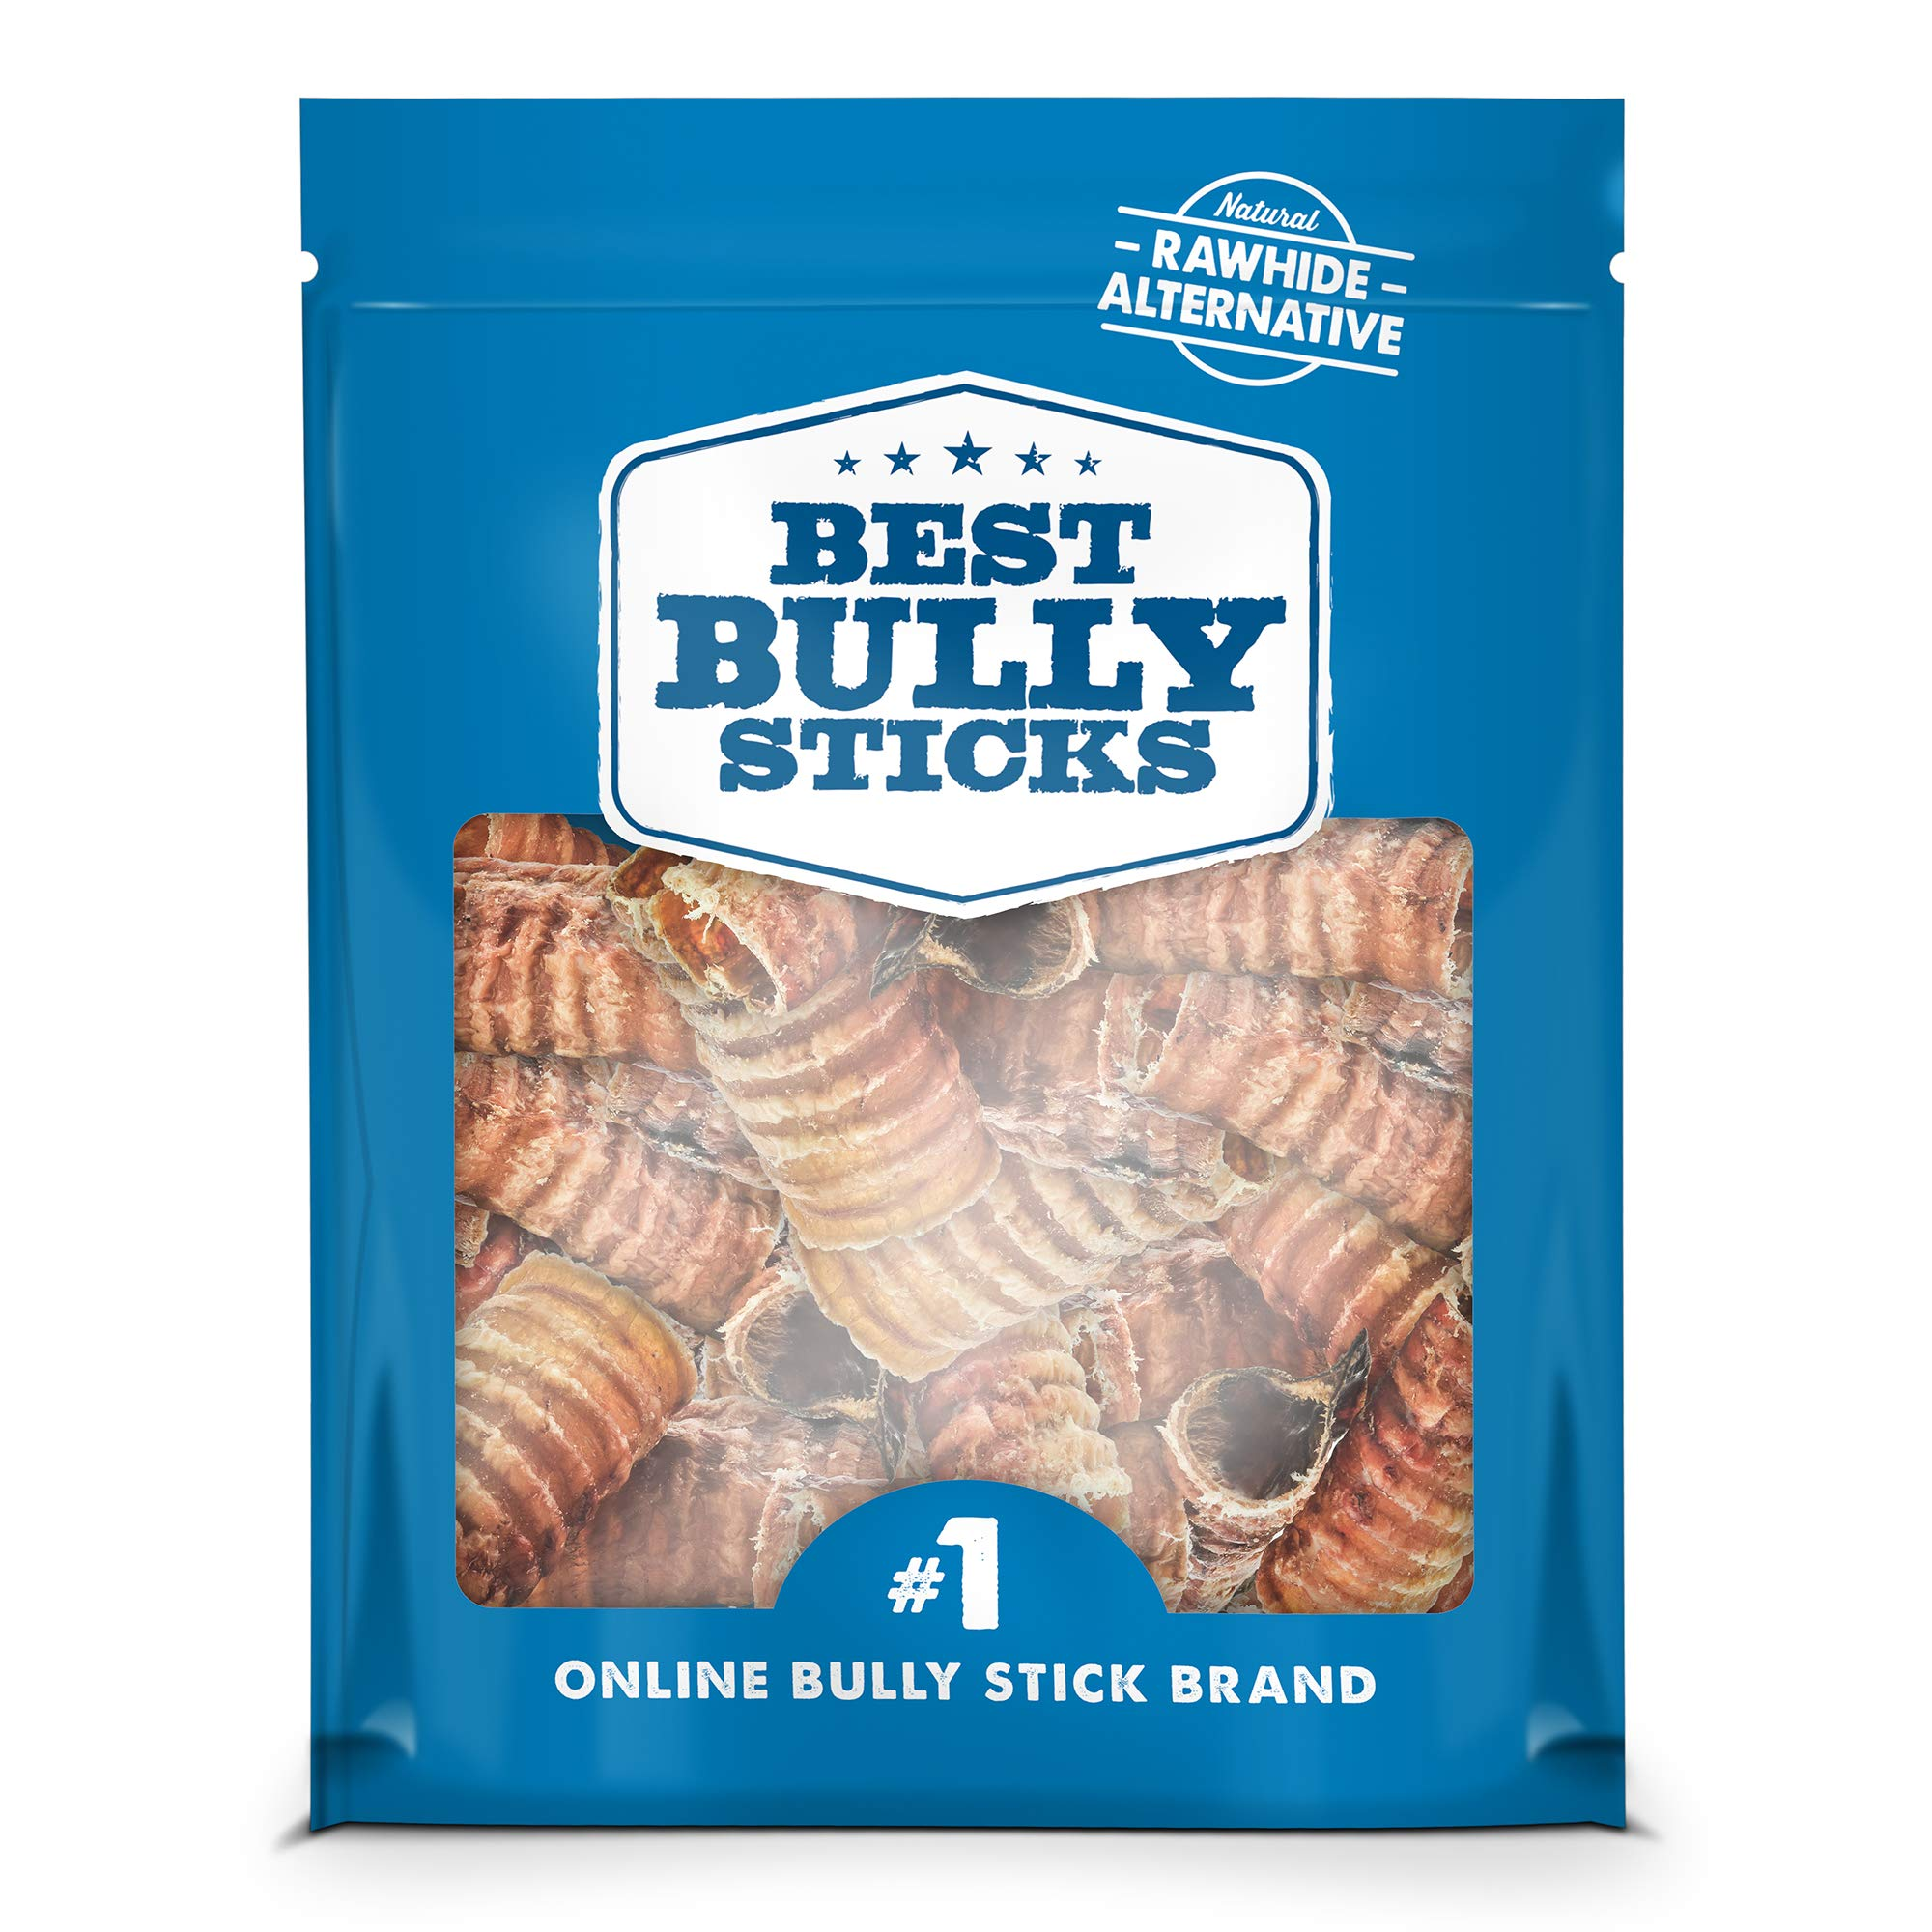 Best Bully Sticks Premium 3-inch Beef Trachea Dog Chews (50 Pack) - All-Natural, Grain-Free, 100% Beef, Single-Ingredient Dog Treat Chew - Promotes Dental Health by Best Bully Sticks